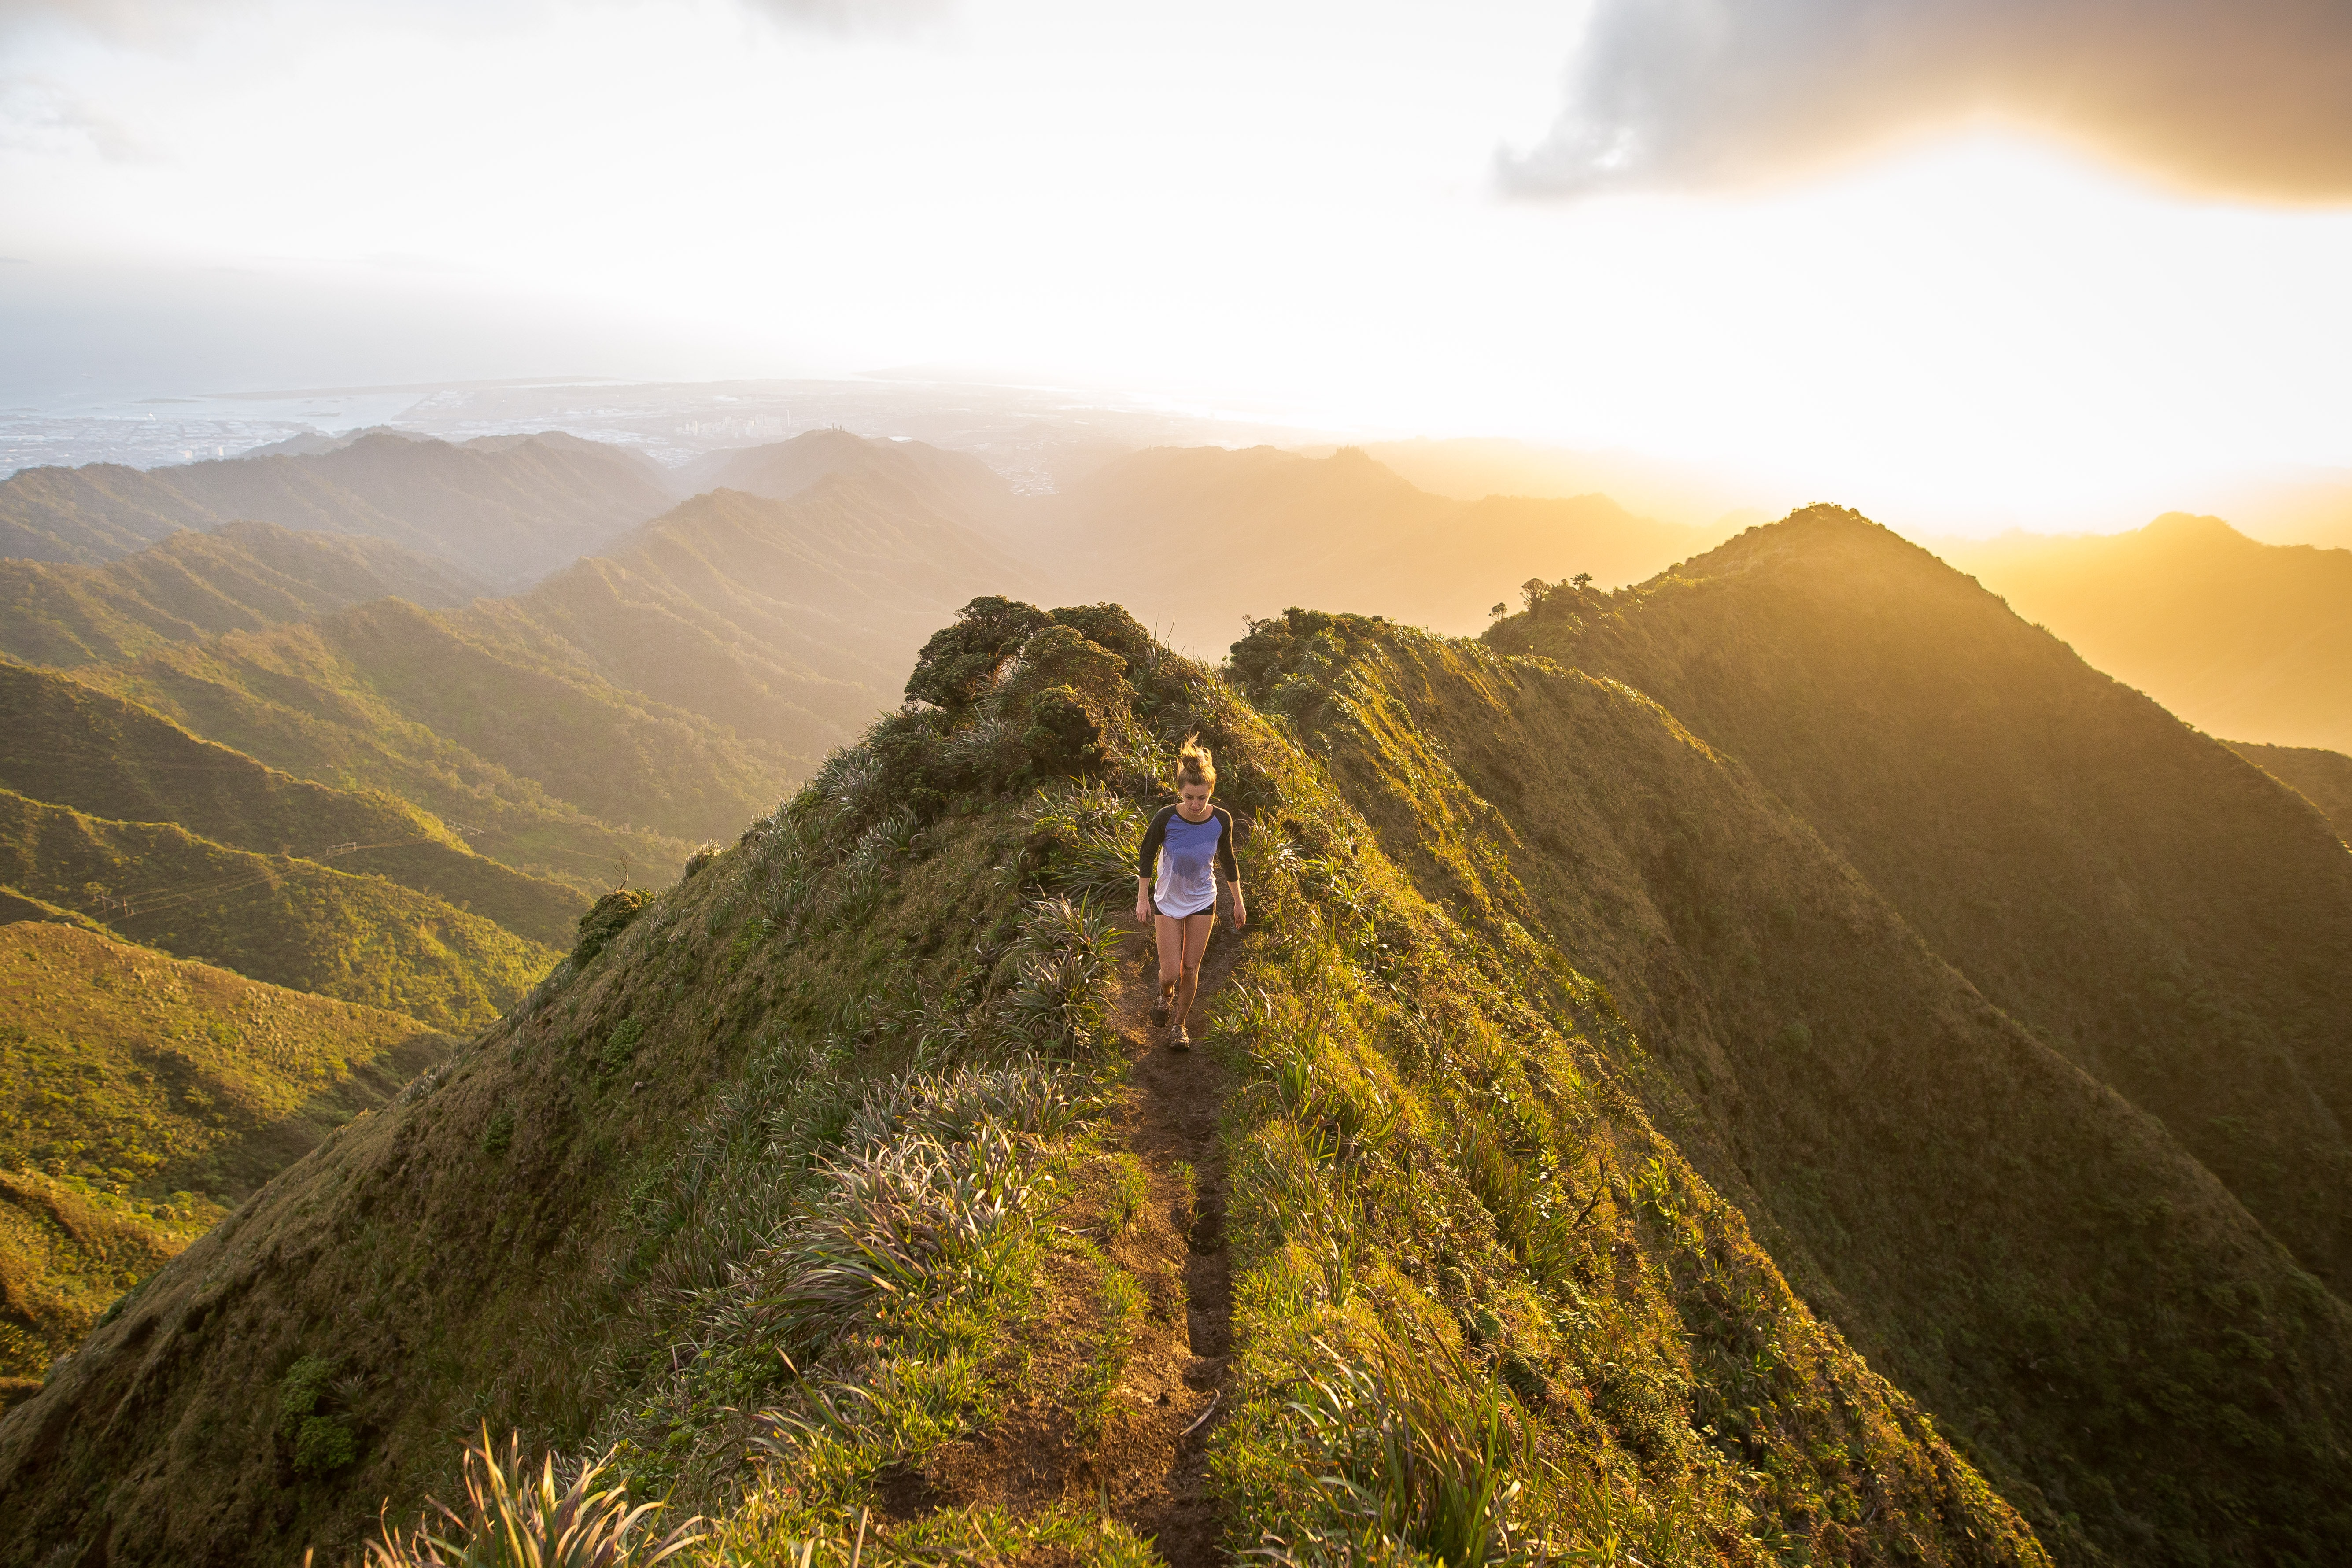 A woman hiking along the top of a grassy mountain with the sunset in the background